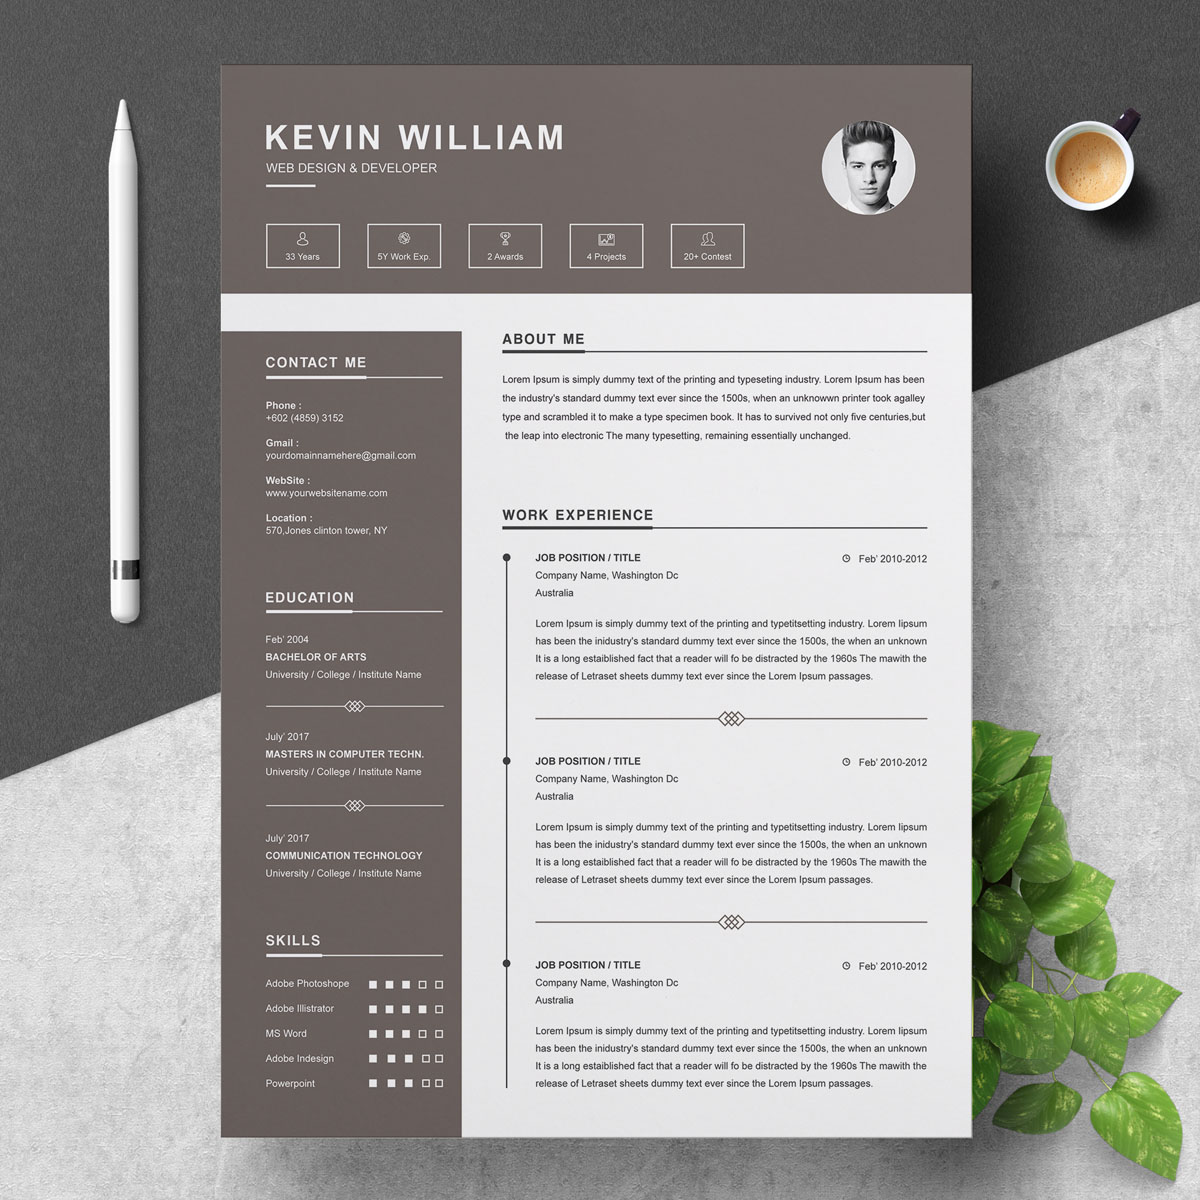 kevin william resume template  74169